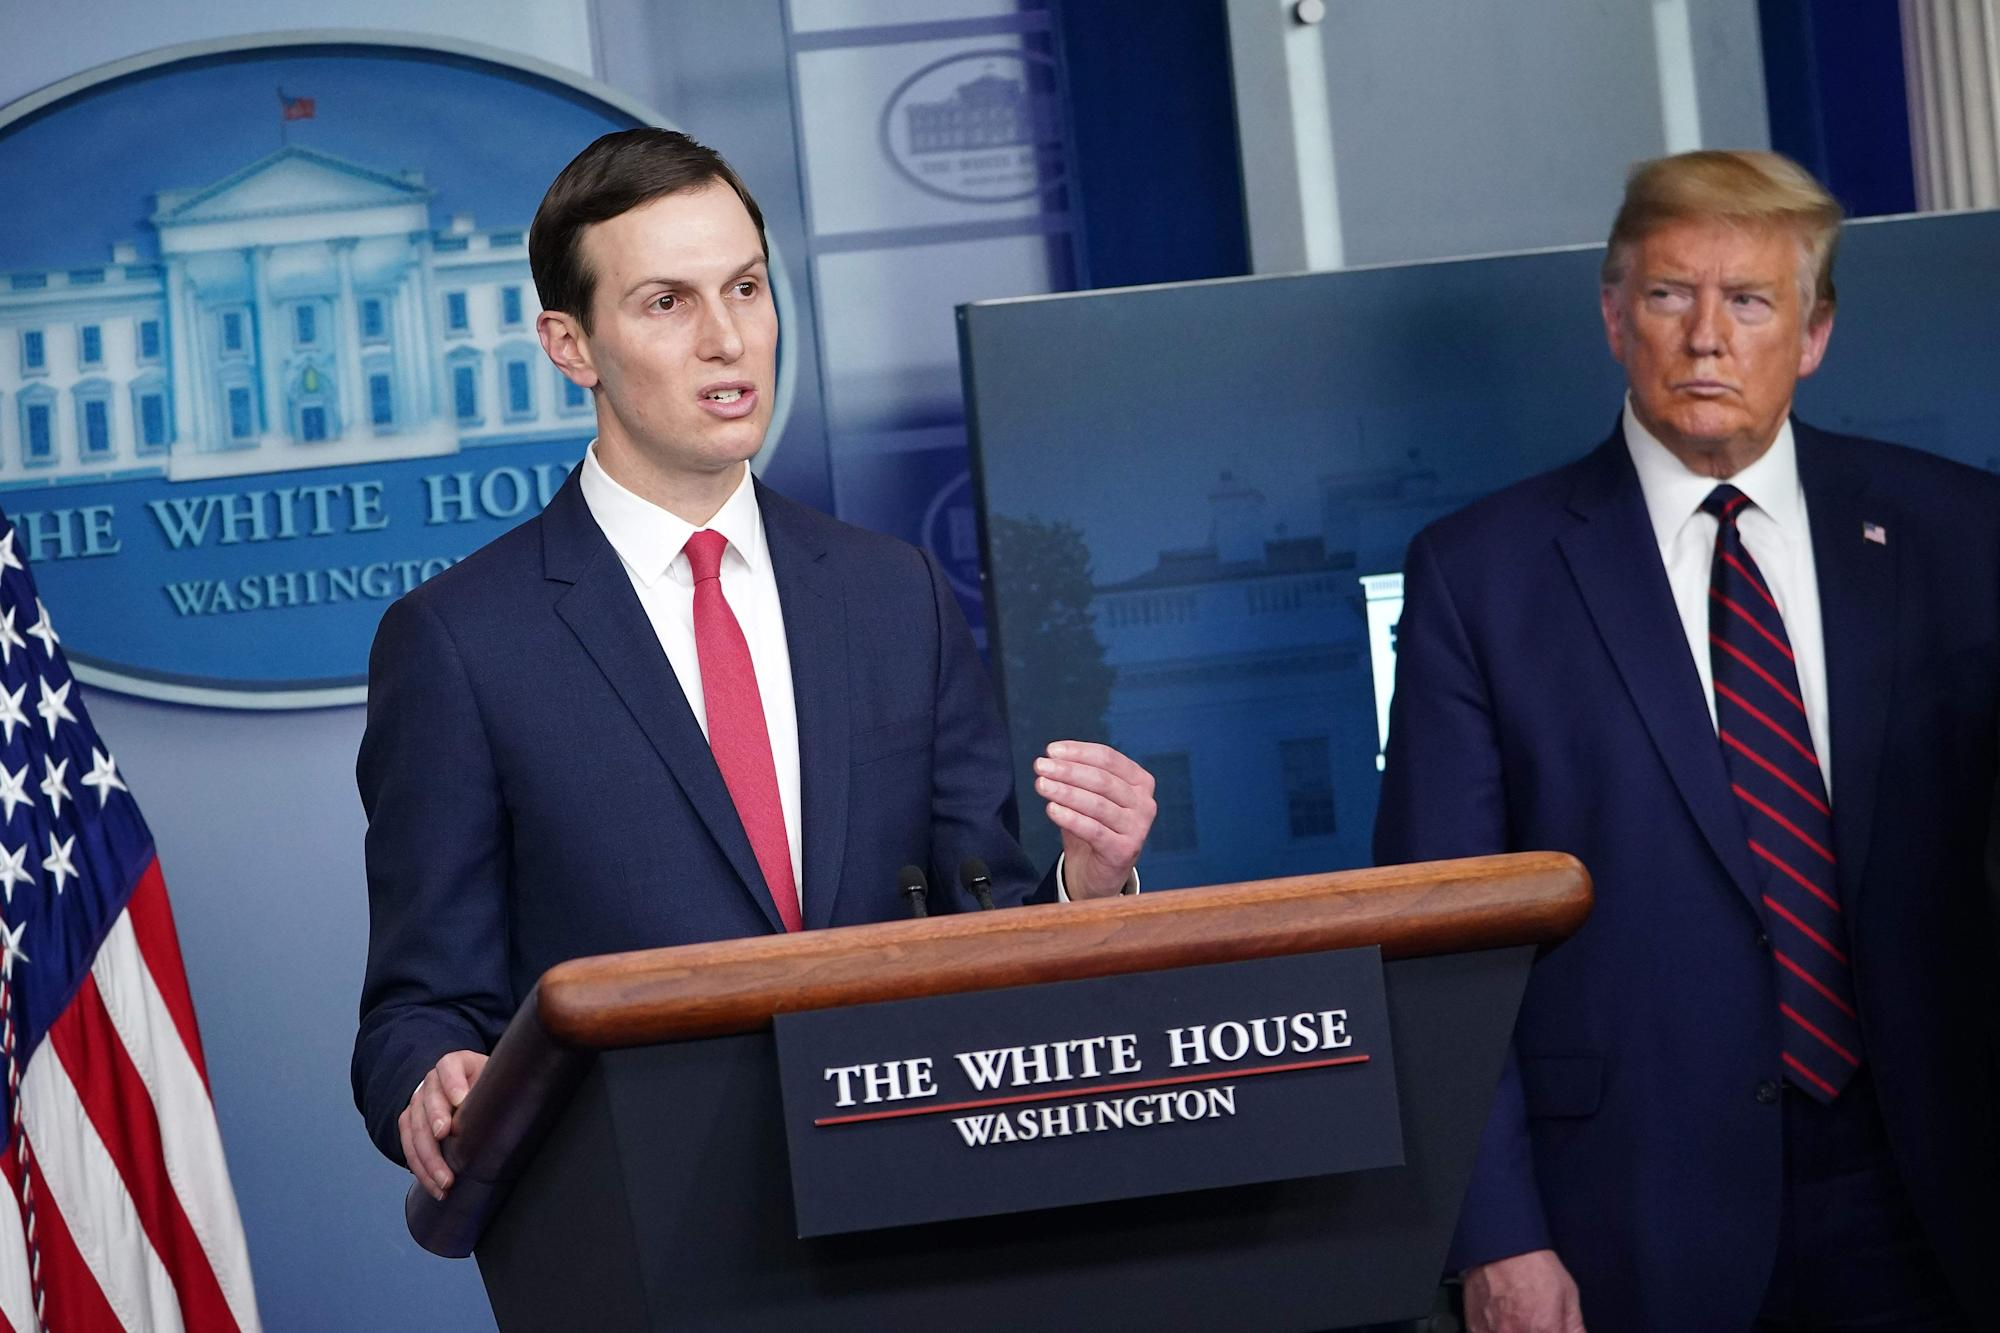 Trump blamed Jared Kushner and Covid testing for loss